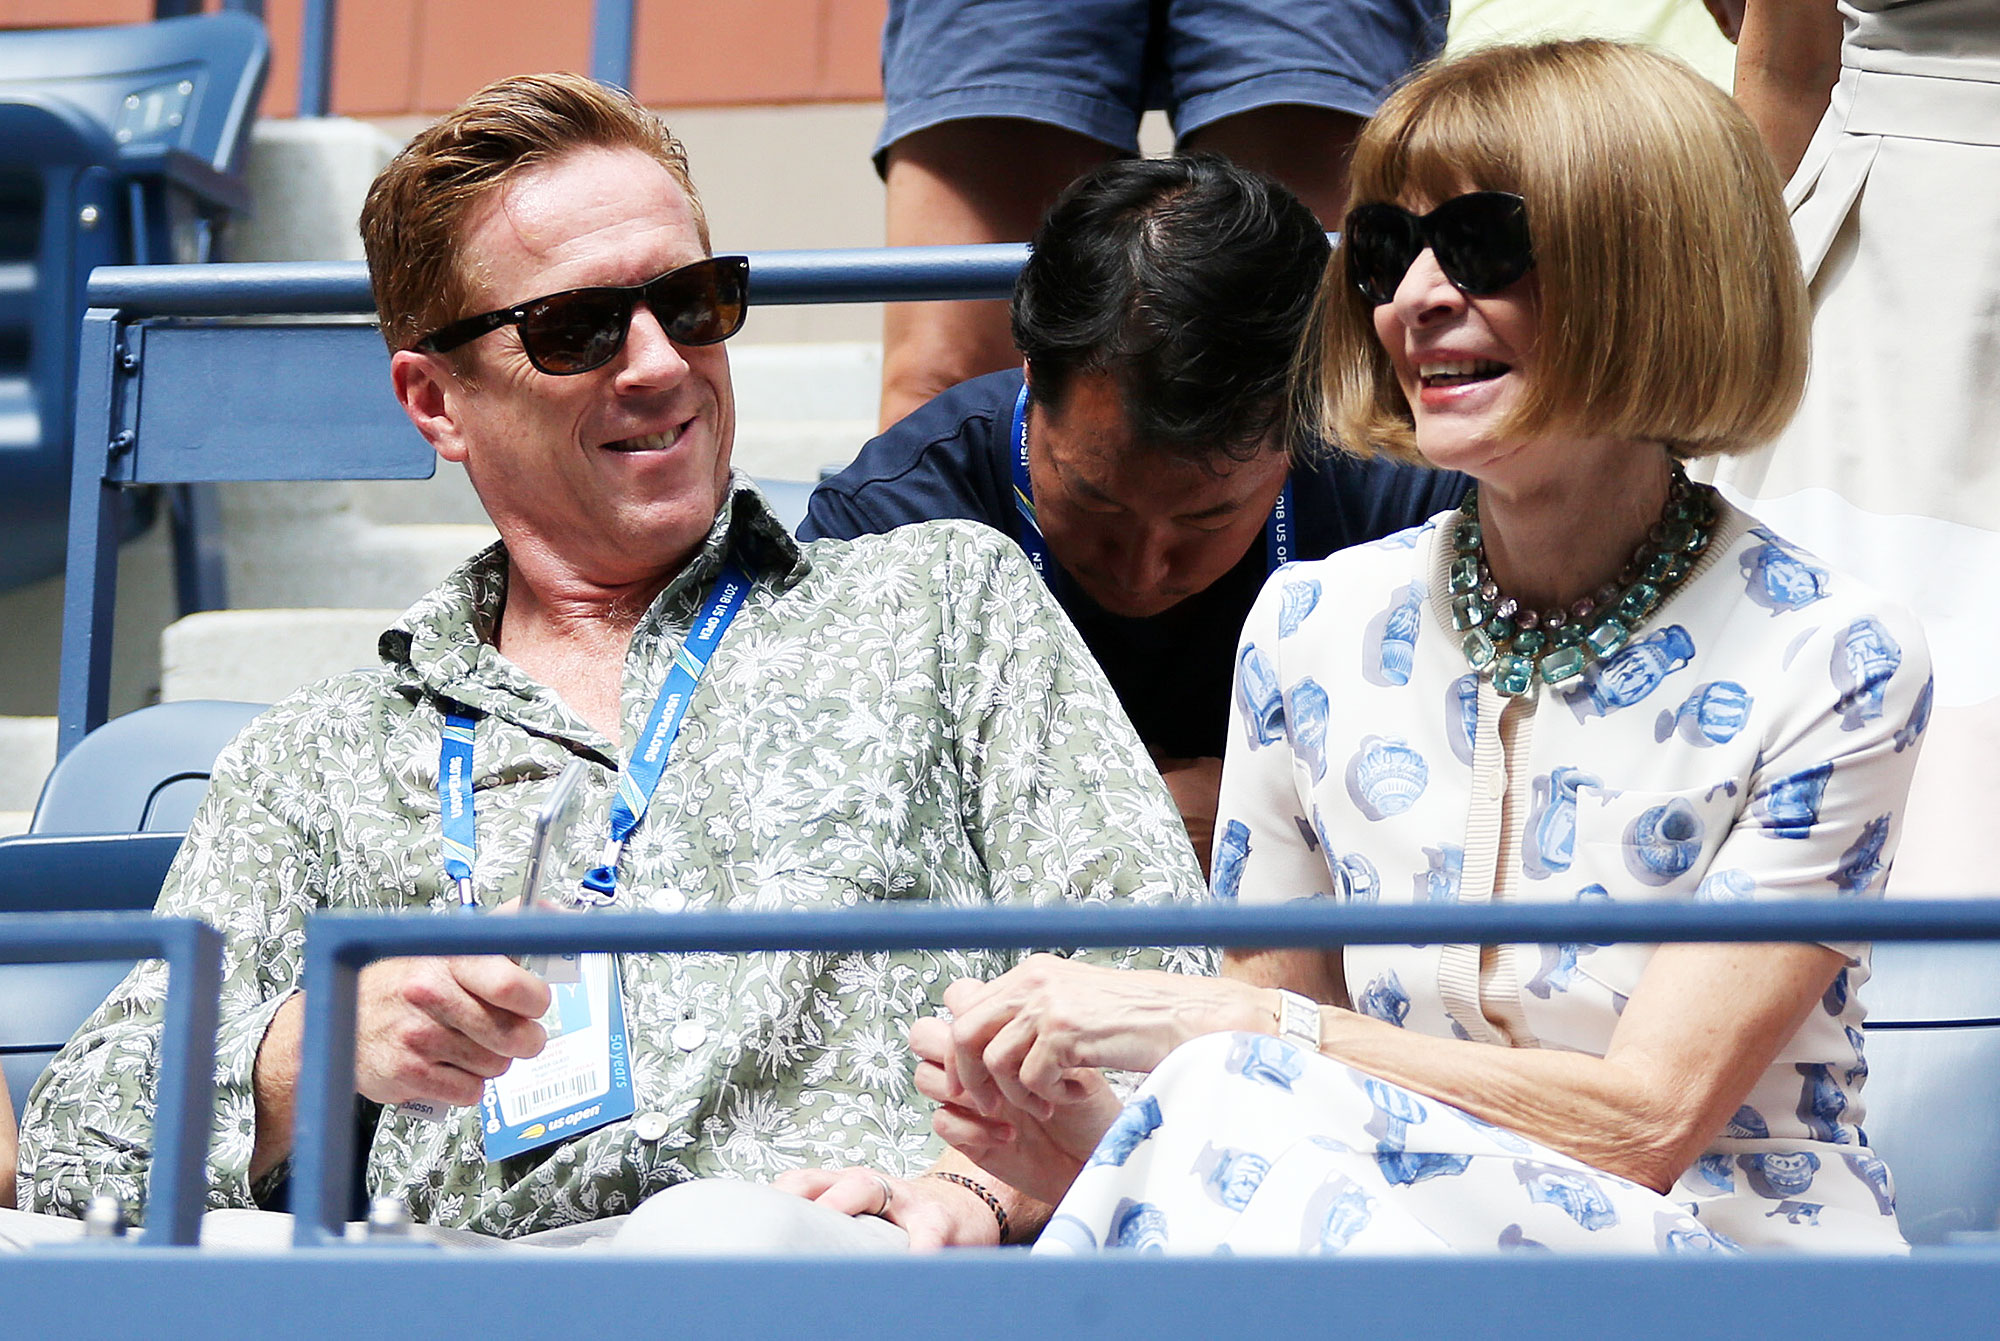 Damian Lewis Anna Wintour Us Open 2018 - The Homeland alum and the Vogue editor-in-chief shared a laugh on August 30.